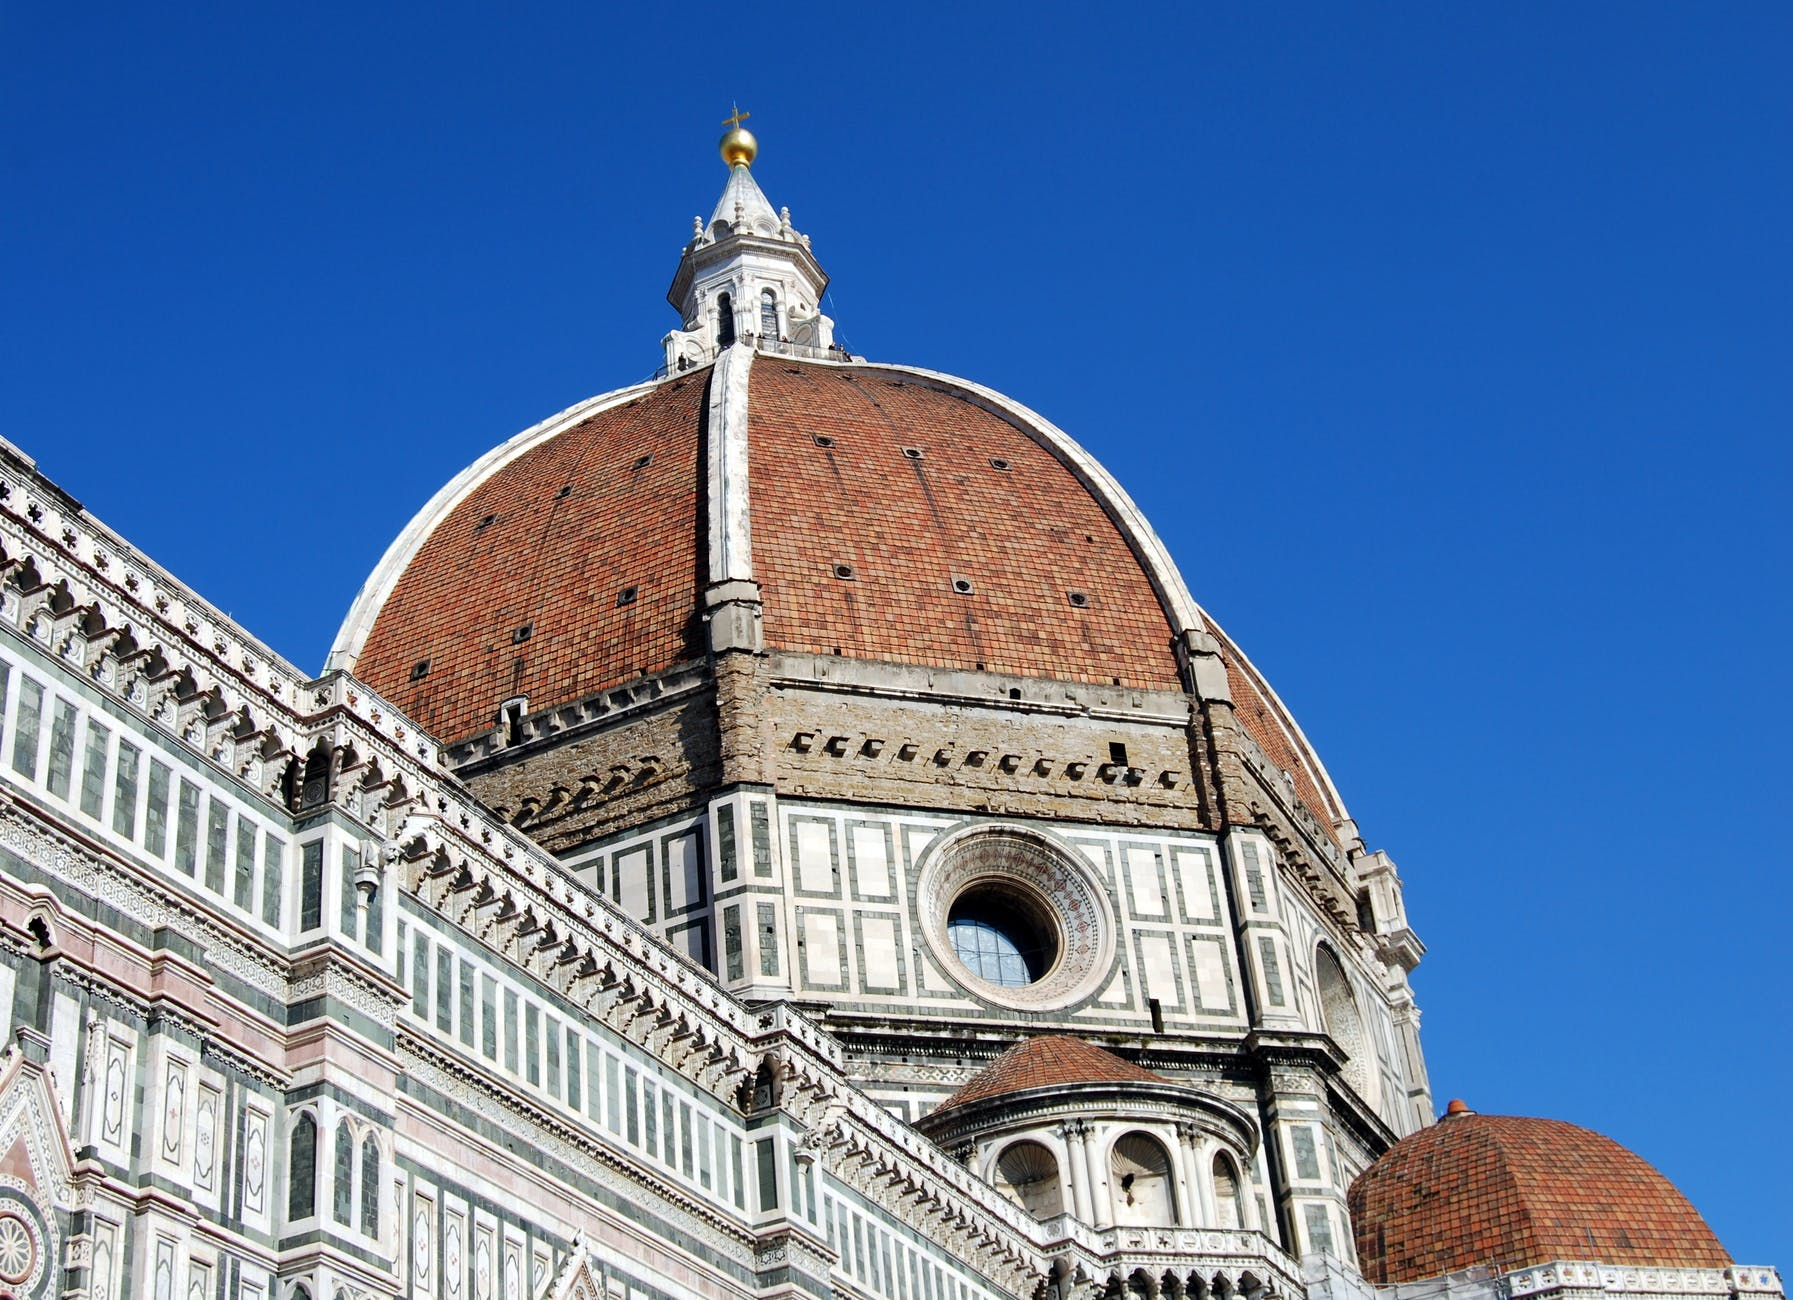 dome-duomo-cathedral-brunelleschi-45855.jpeg